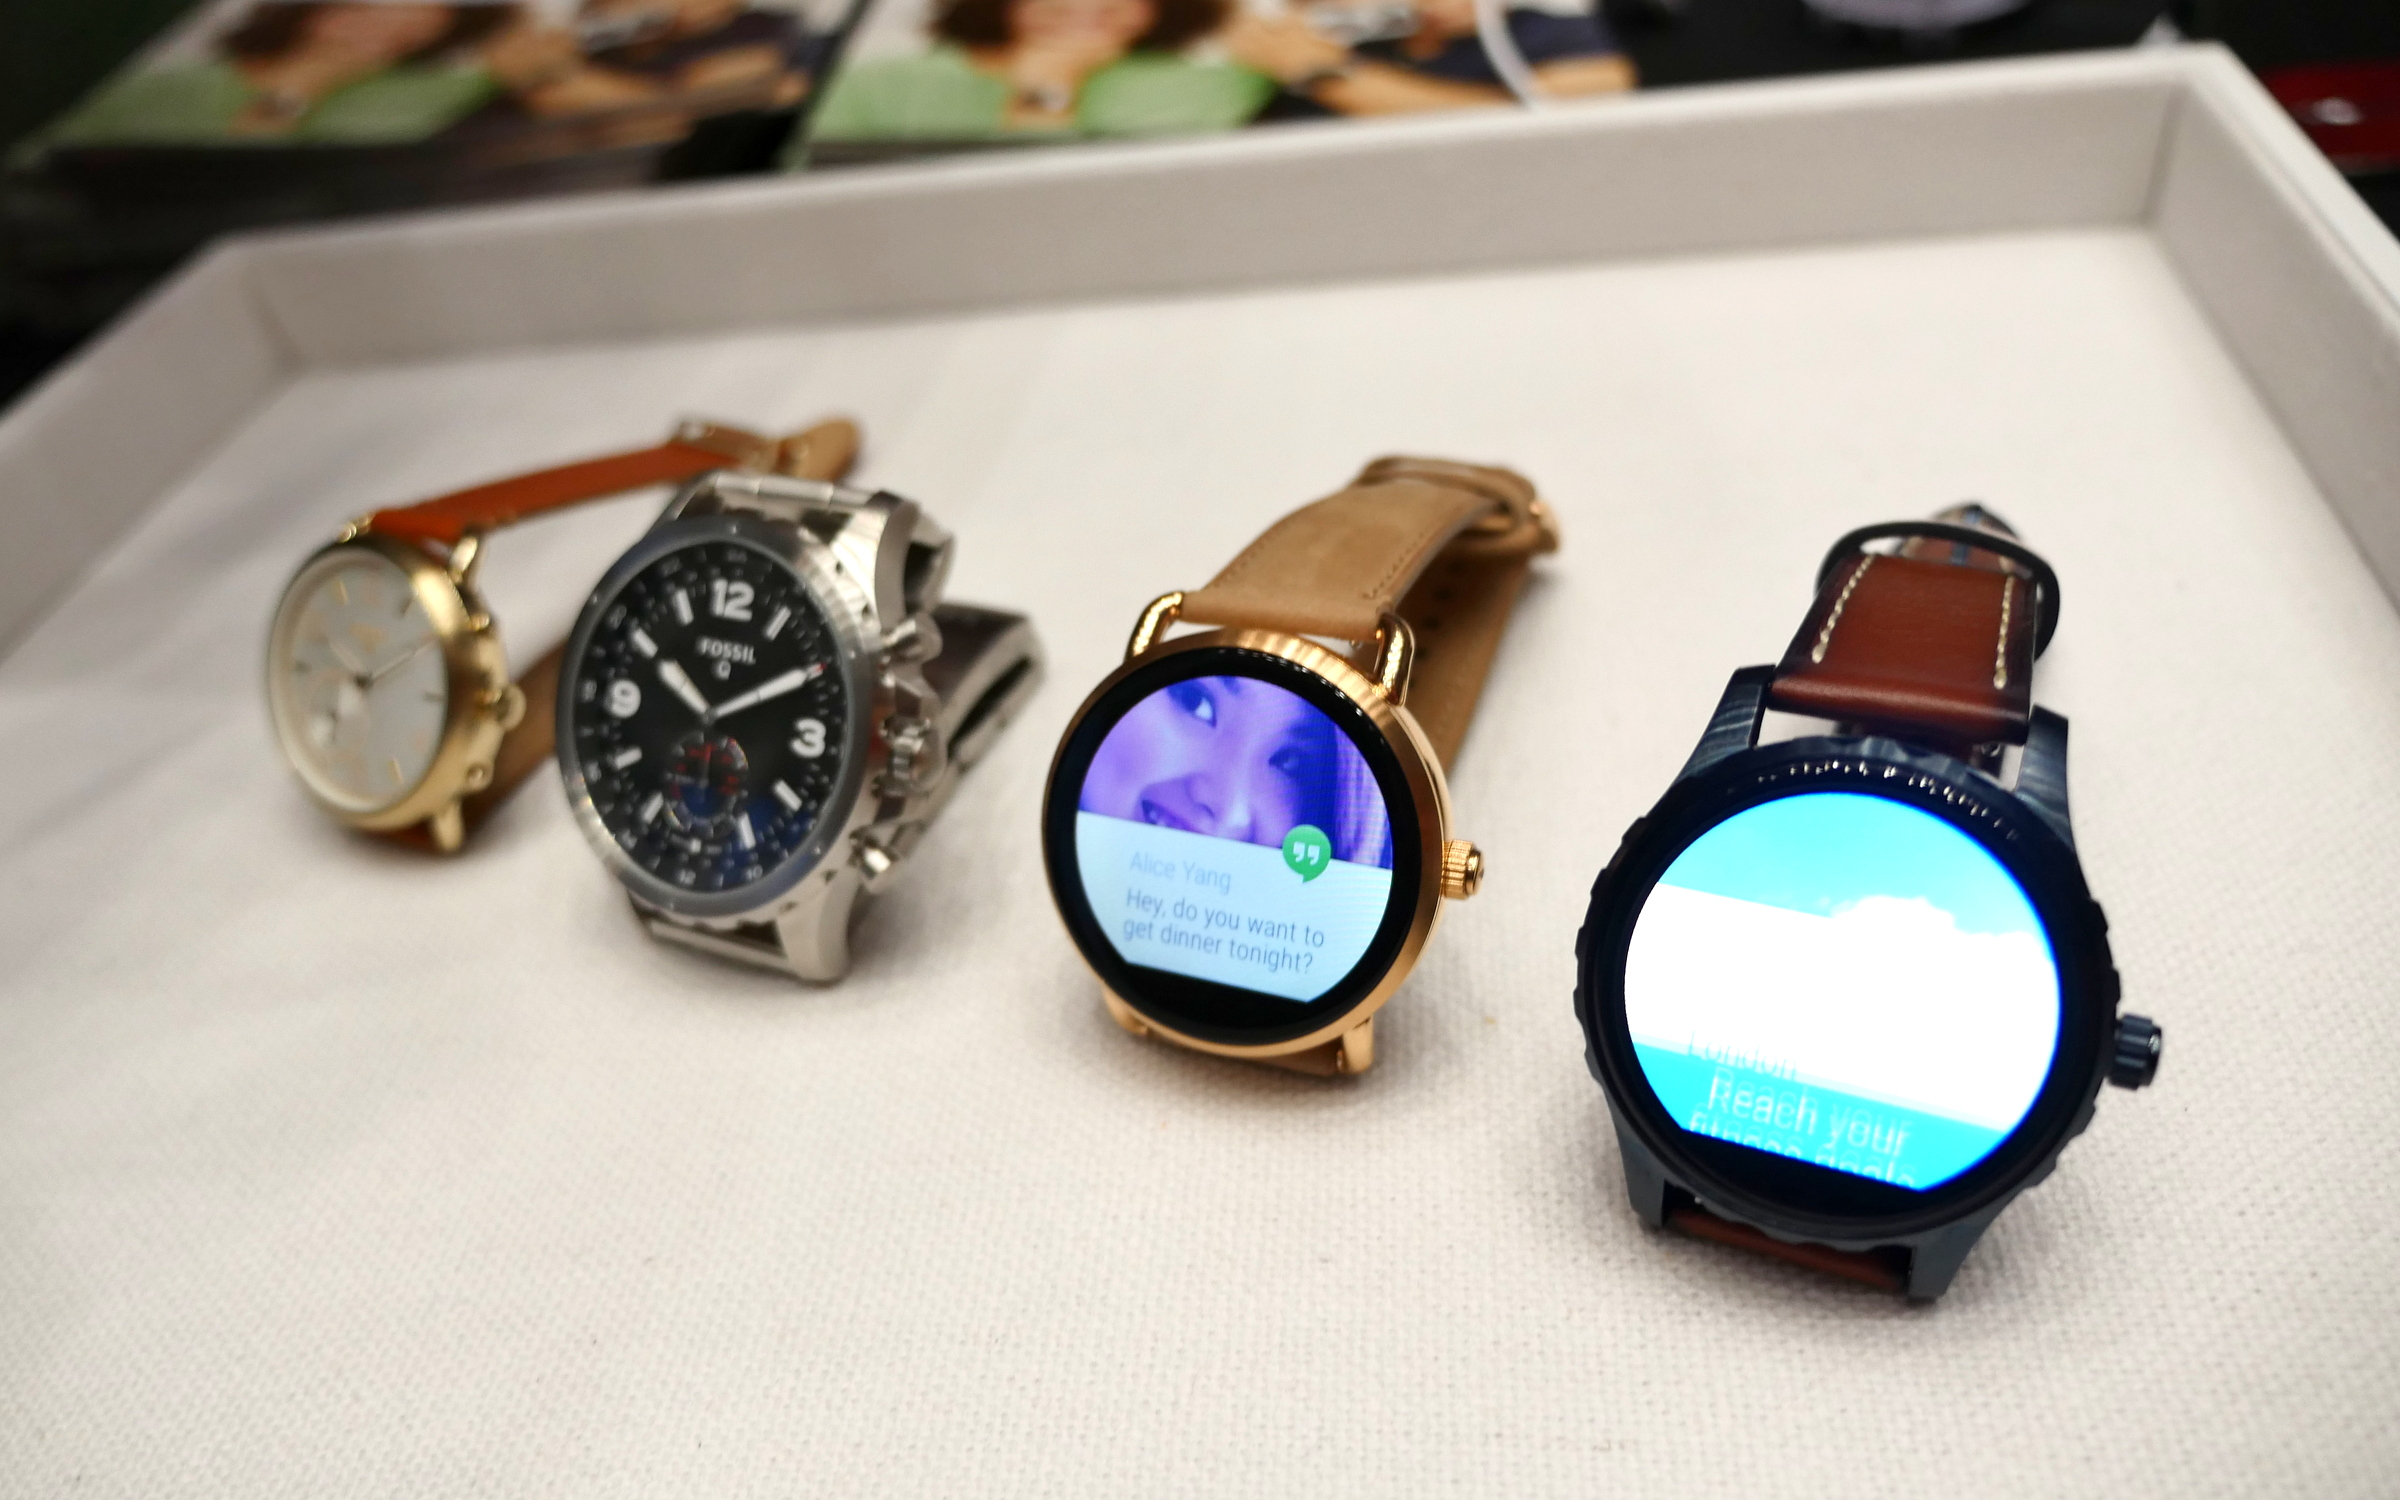 Hands On Fossil Q Marshal And Q Wander Android Wear